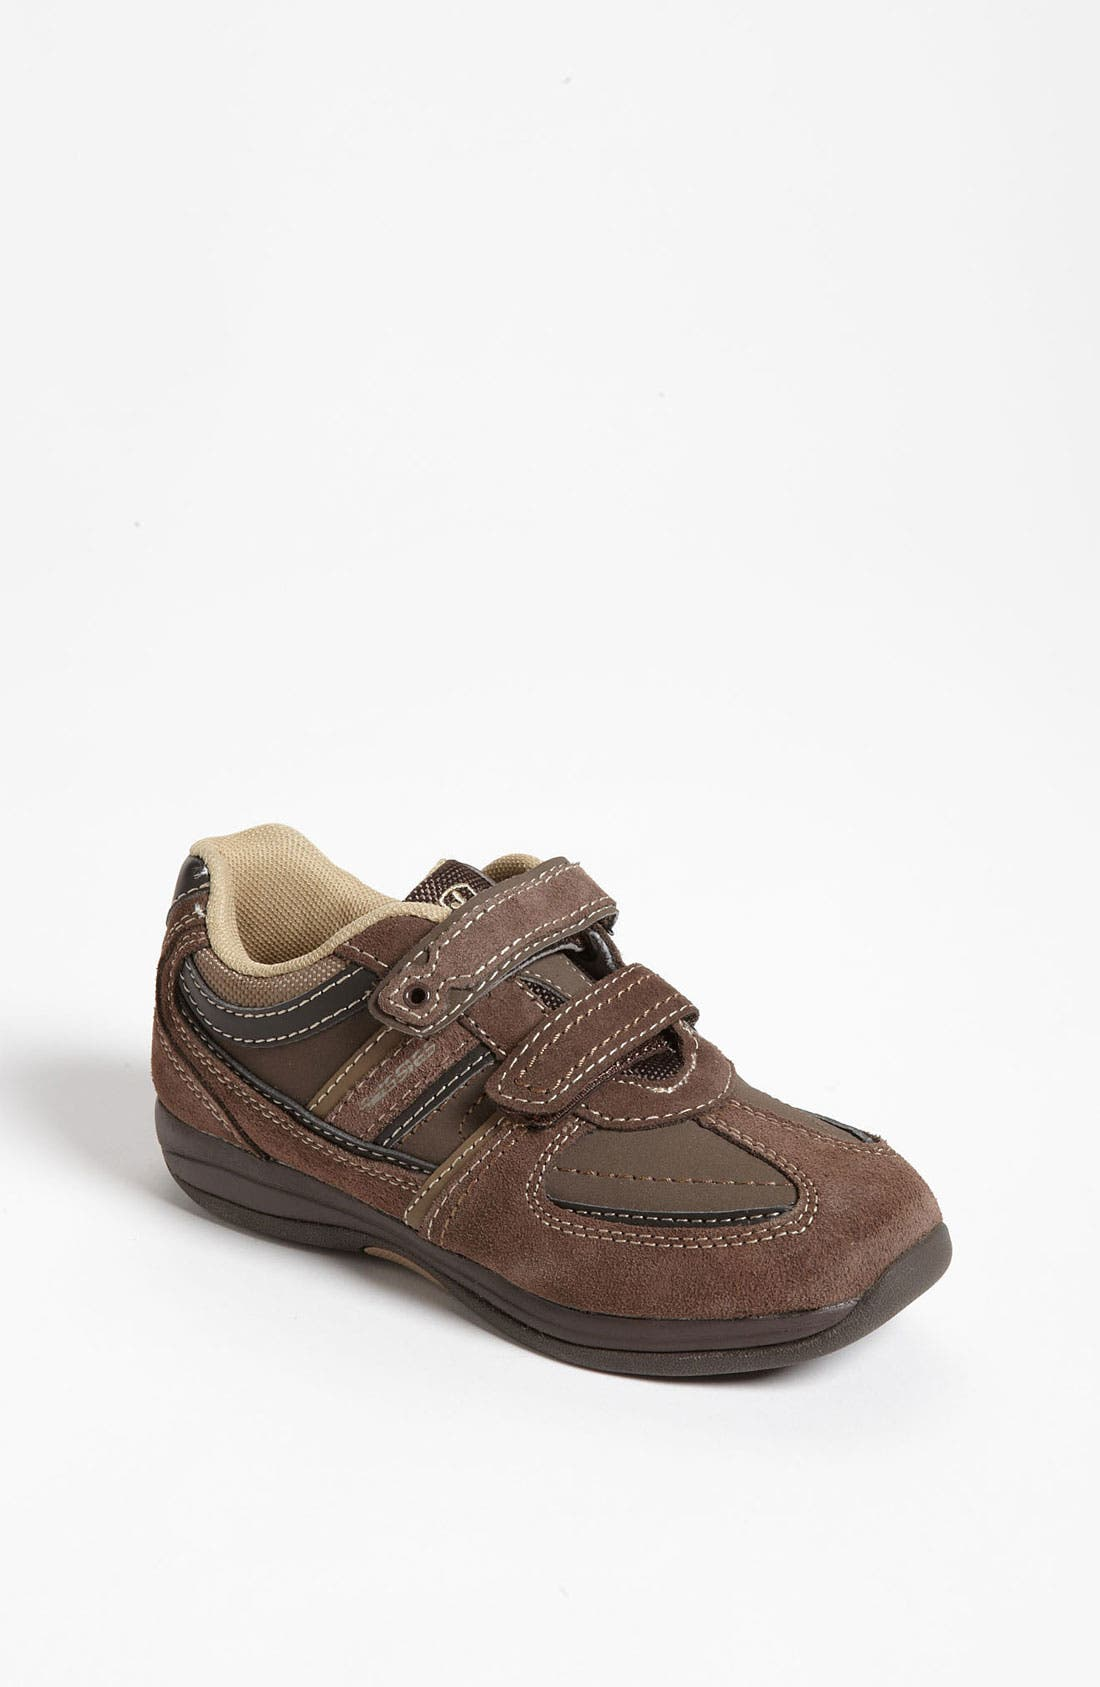 Alternate Image 1 Selected - Swissies 'Derek' Sneaker (Toddler, Little Kid & Big Kid)